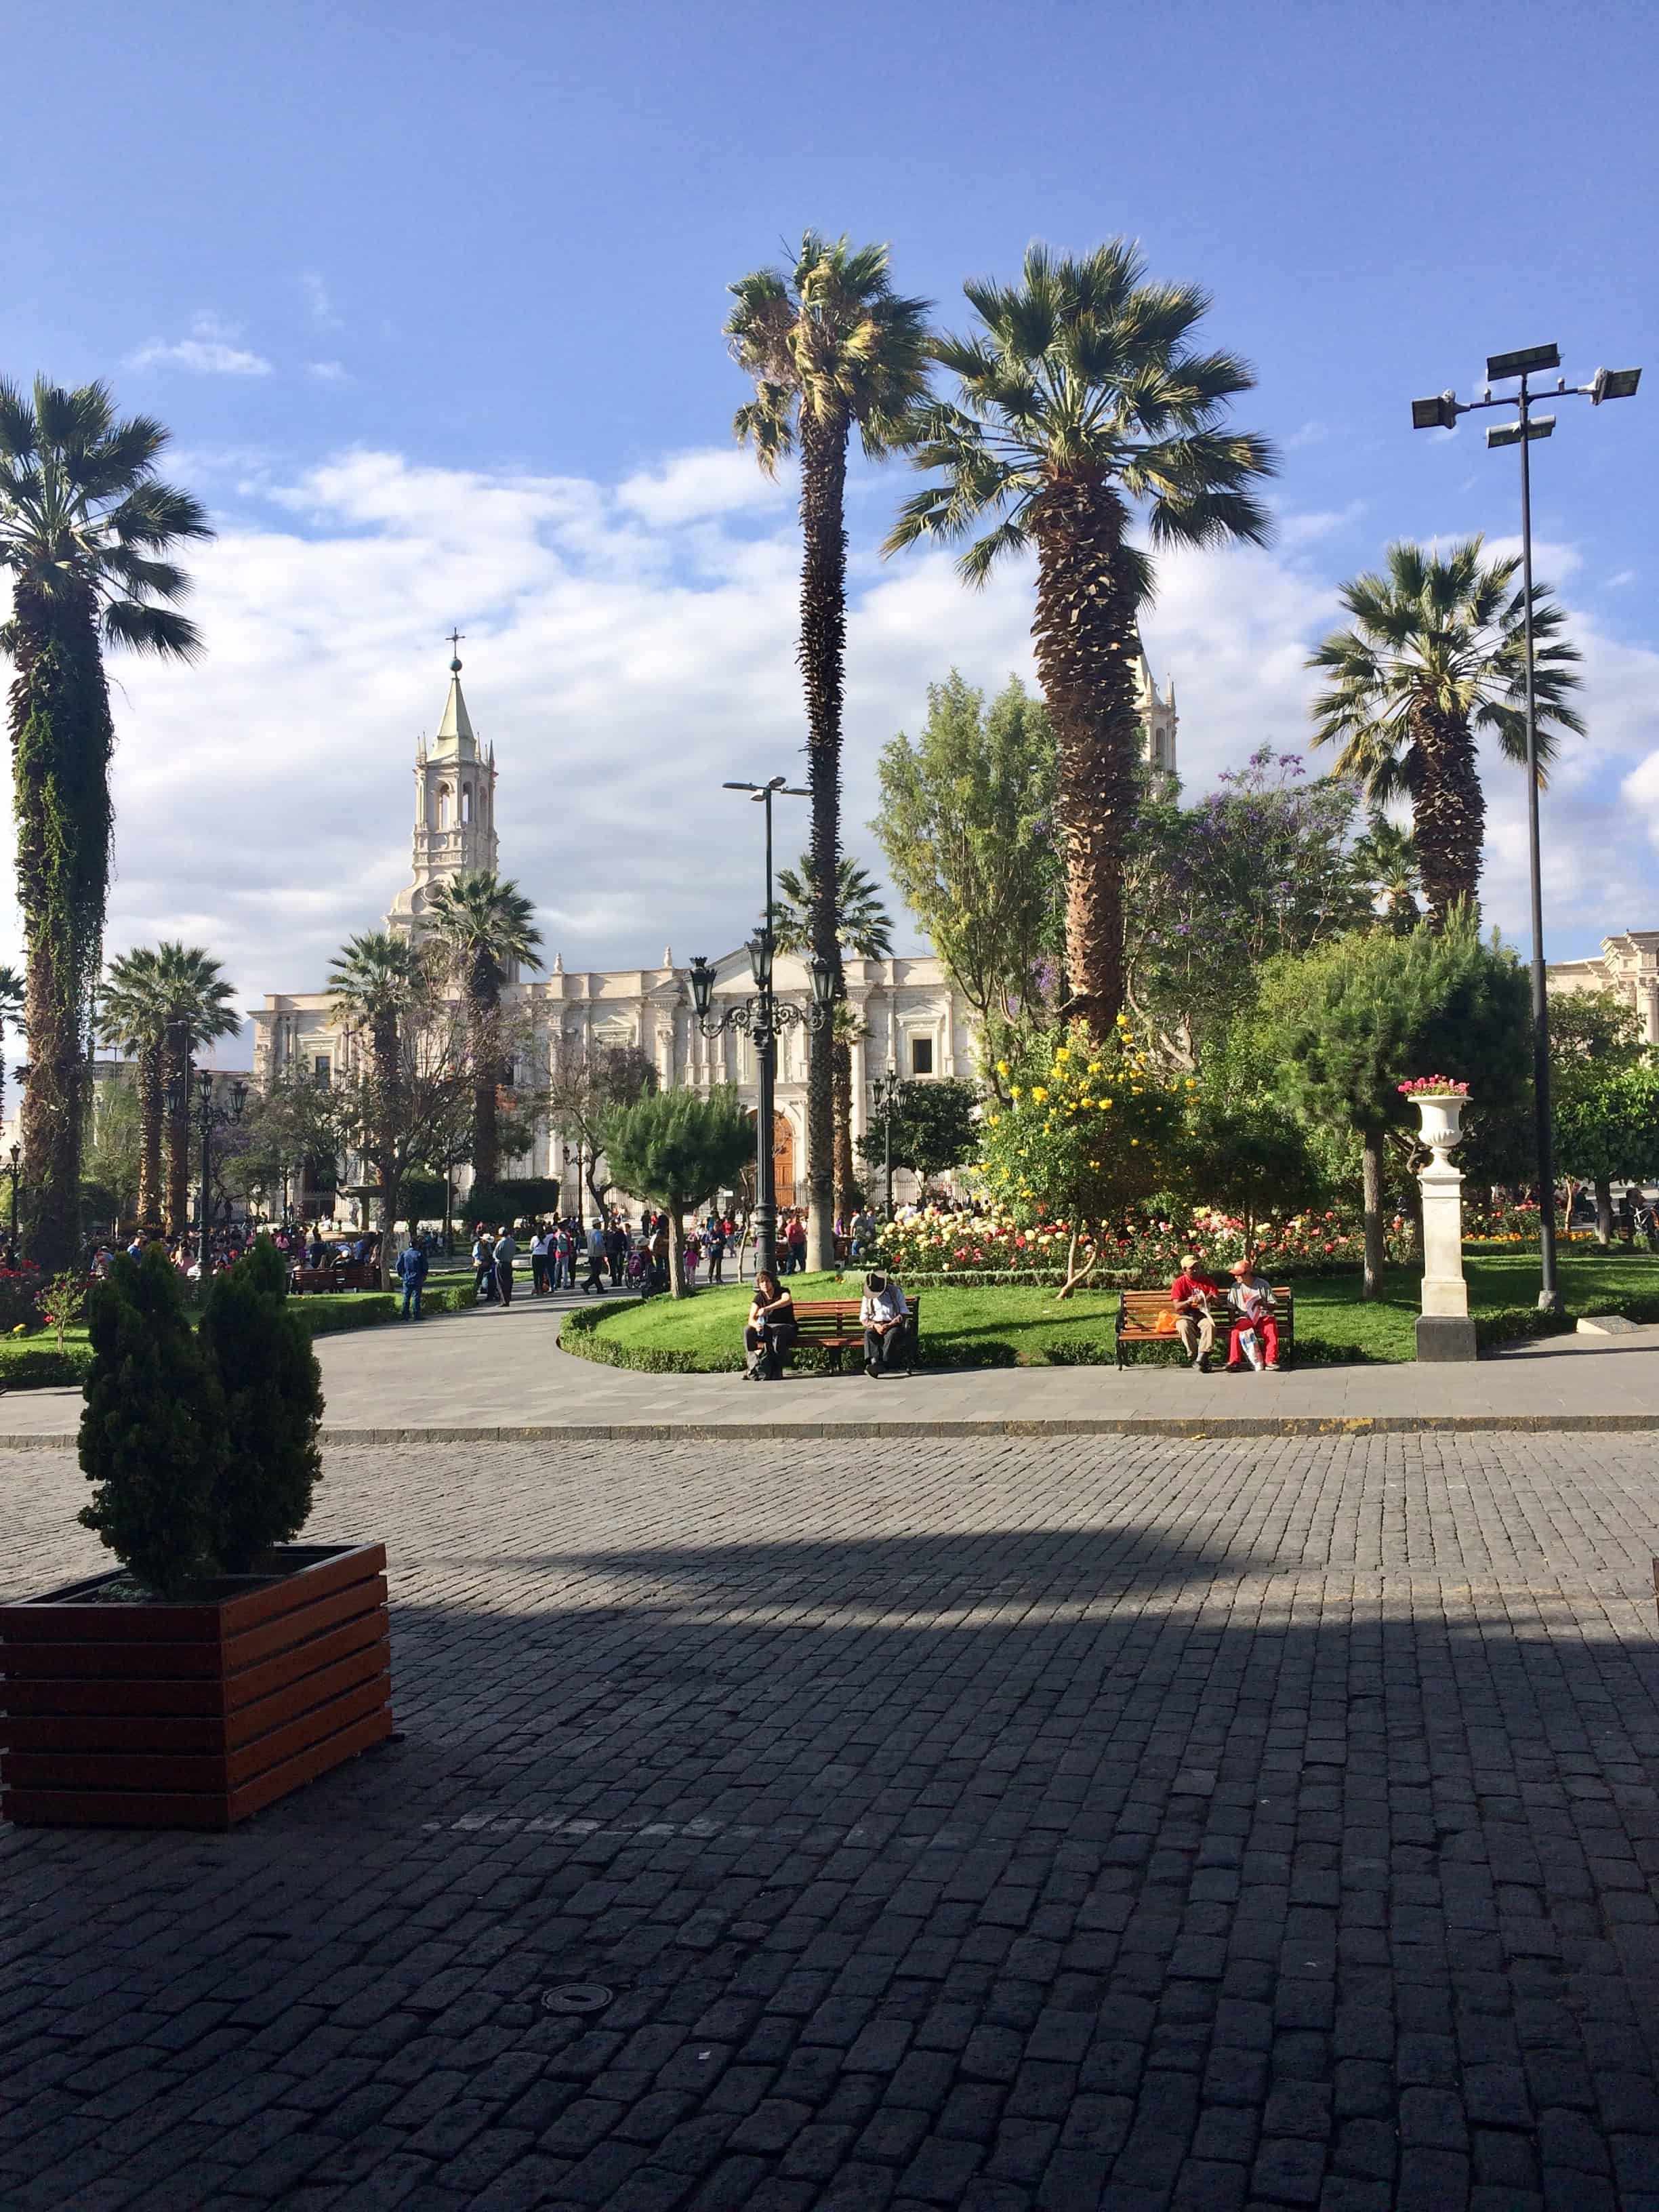 Place-arequipa-perou-palmier-place-cathedrale